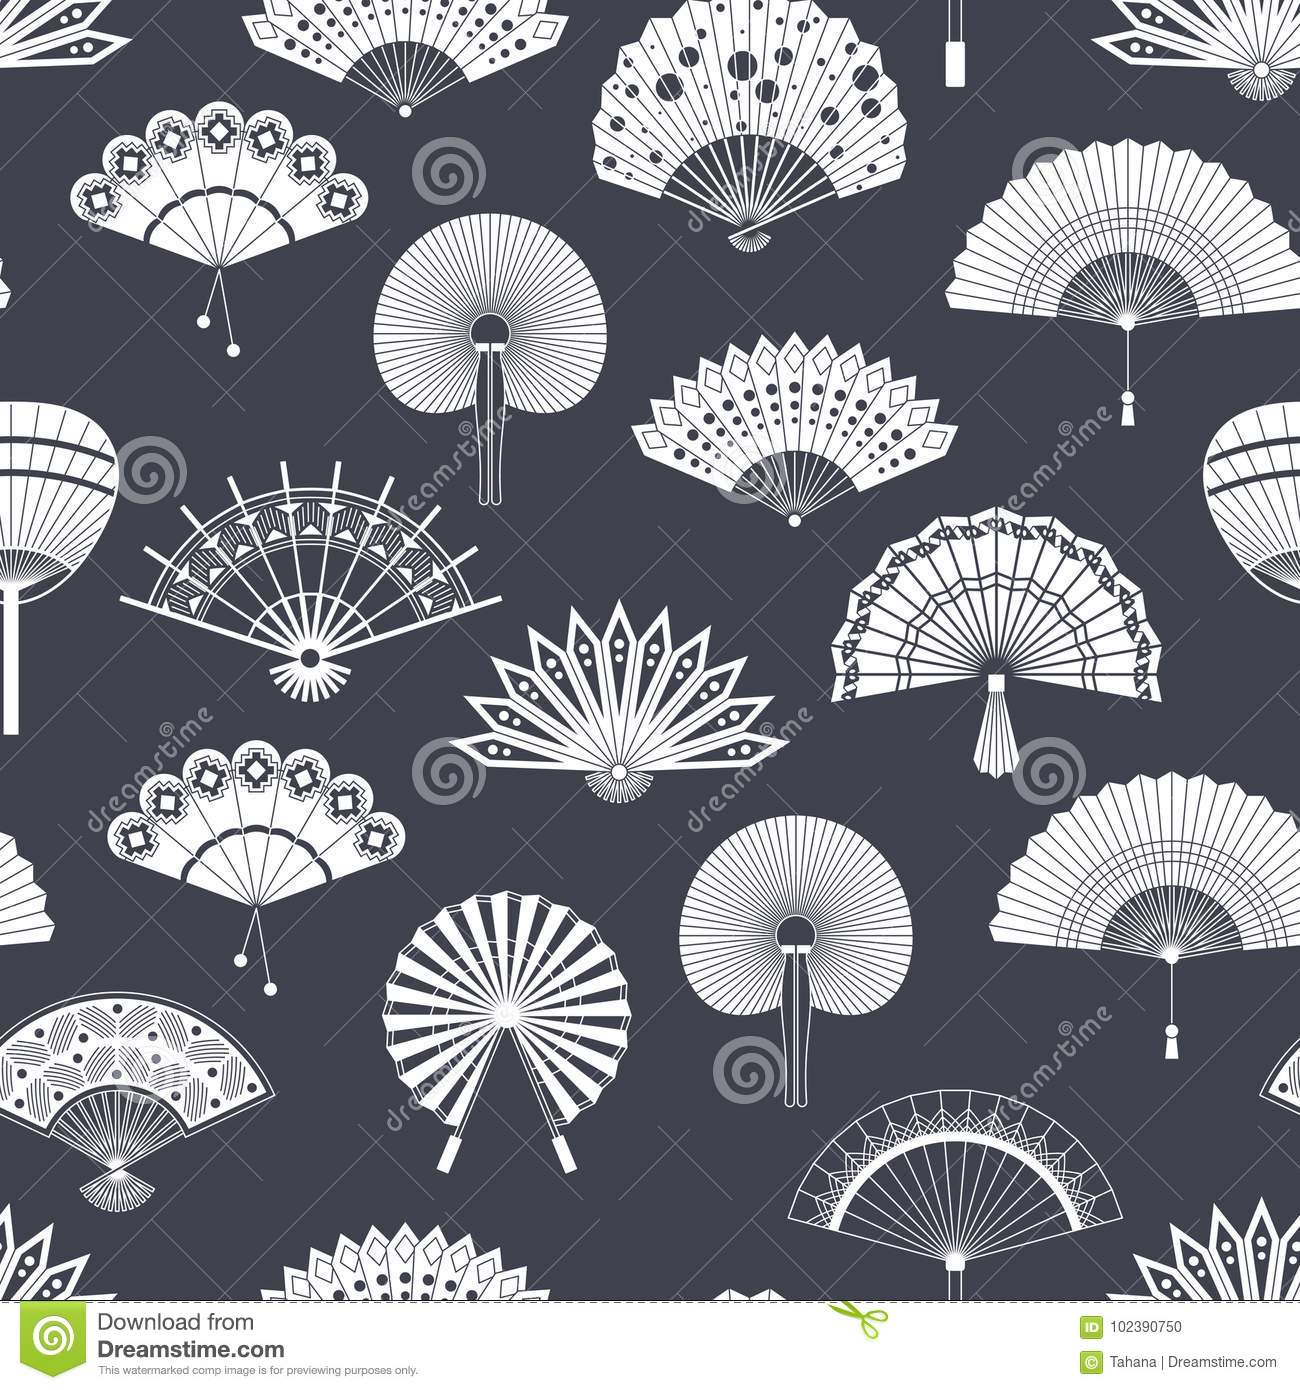 Hand paper fan vector seamless pattern. Chinese or japanese beautiful fans  . Black and white asian souvenir fans illustration. Flat style